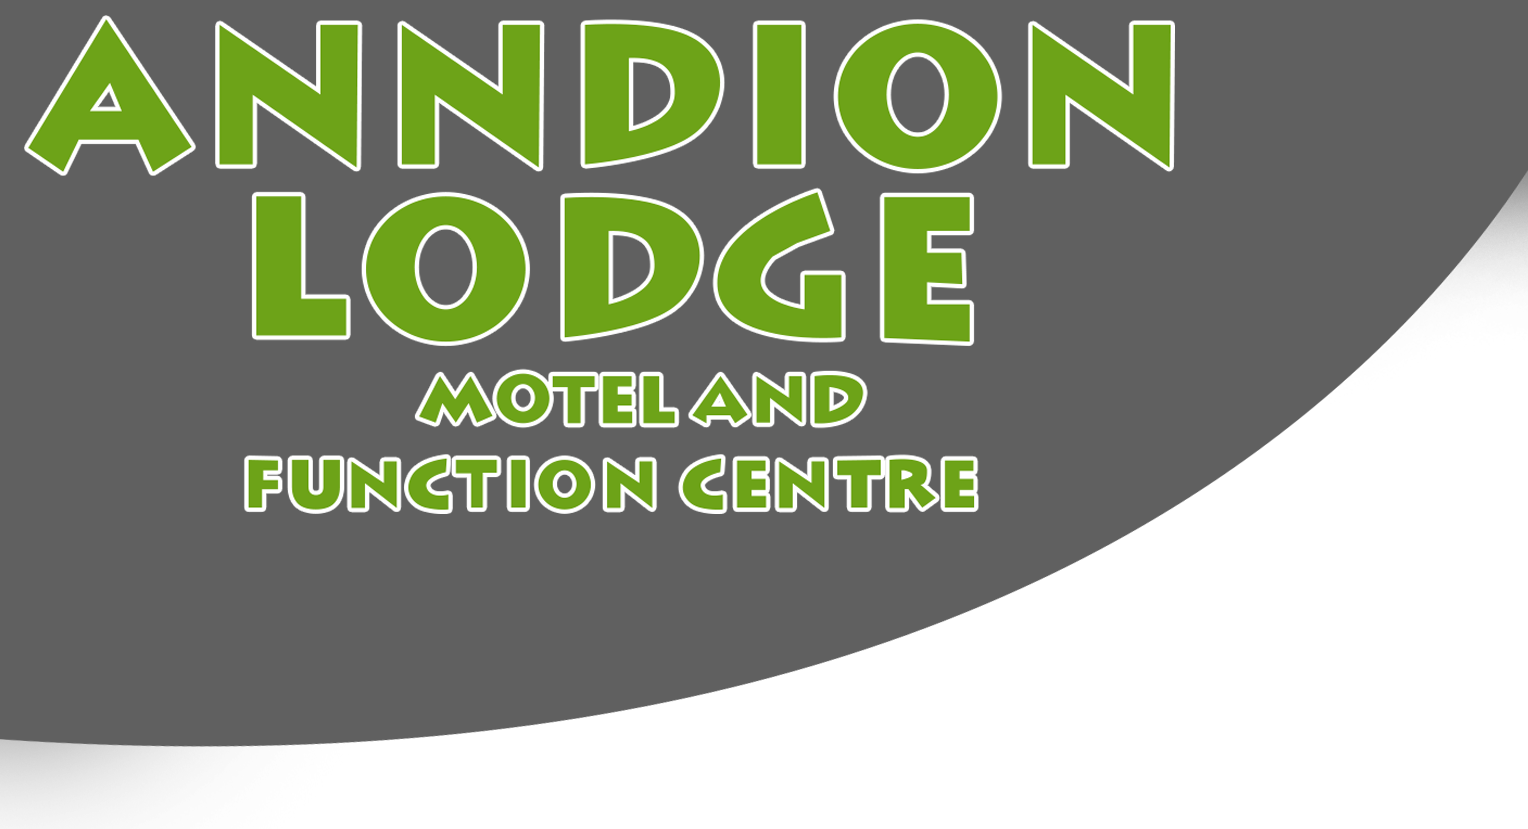 Anndion Lodge